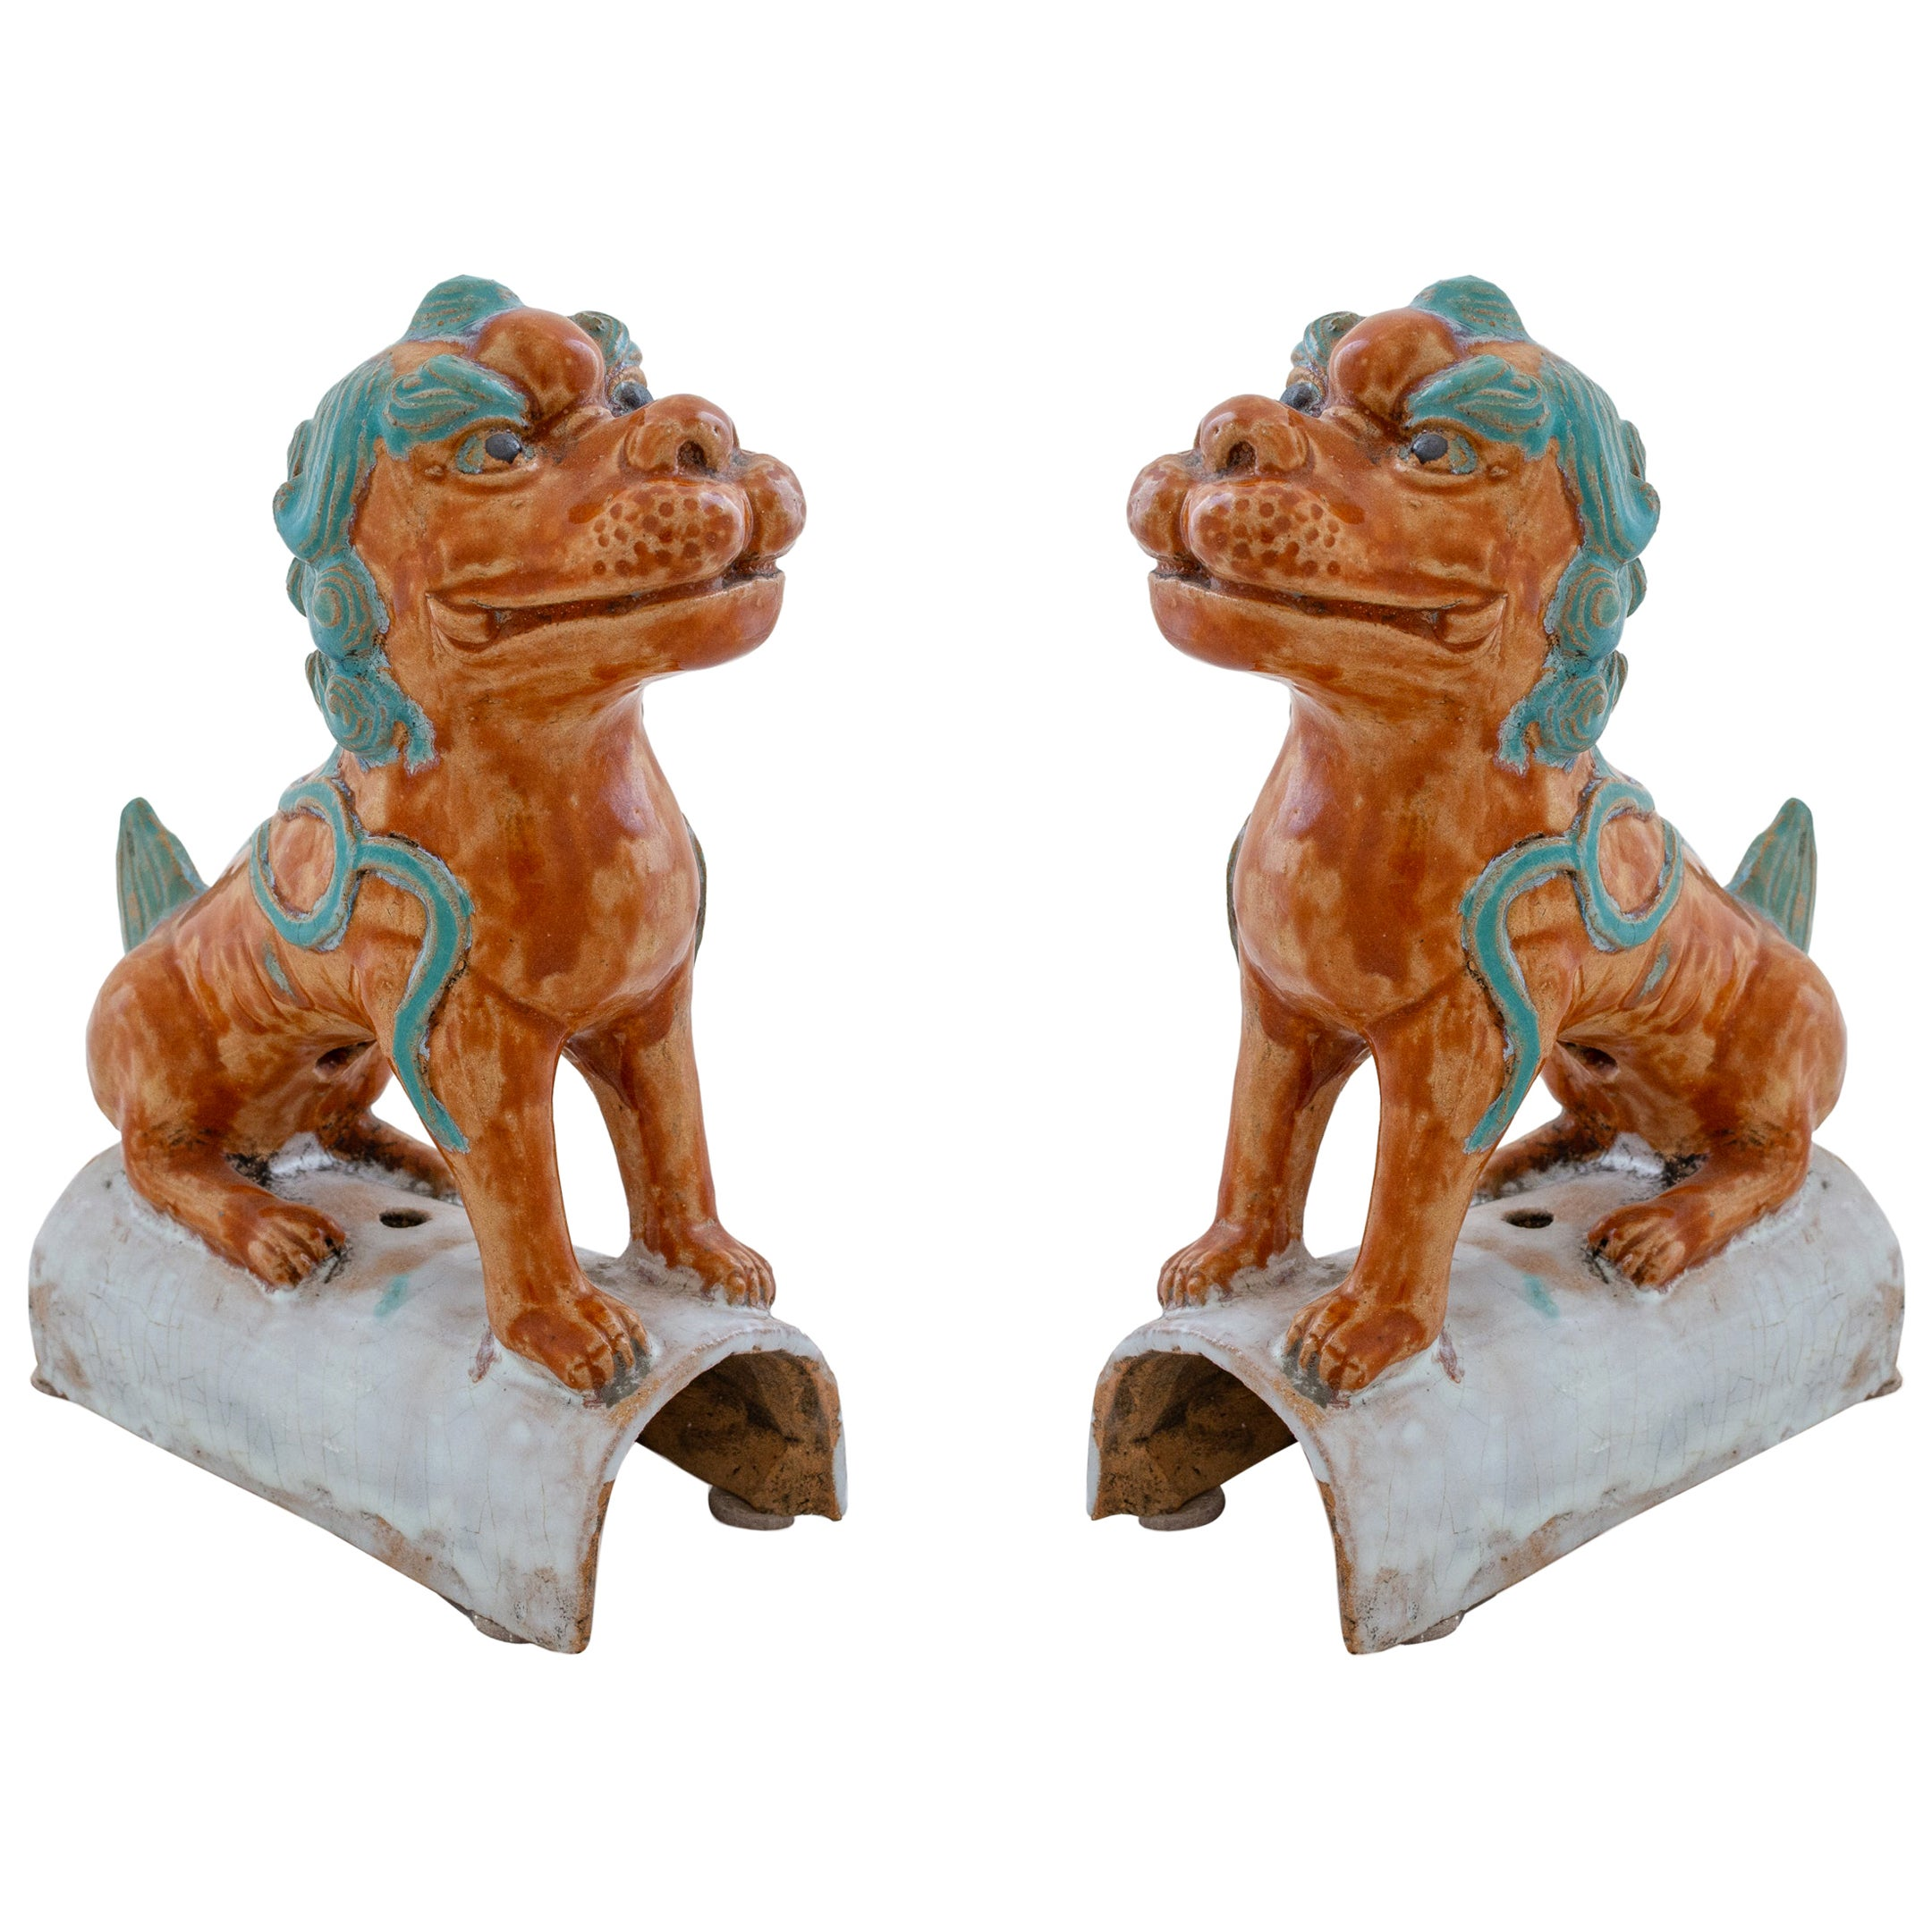 Pair of Colorful Chinese Terracotta Roof Tiles